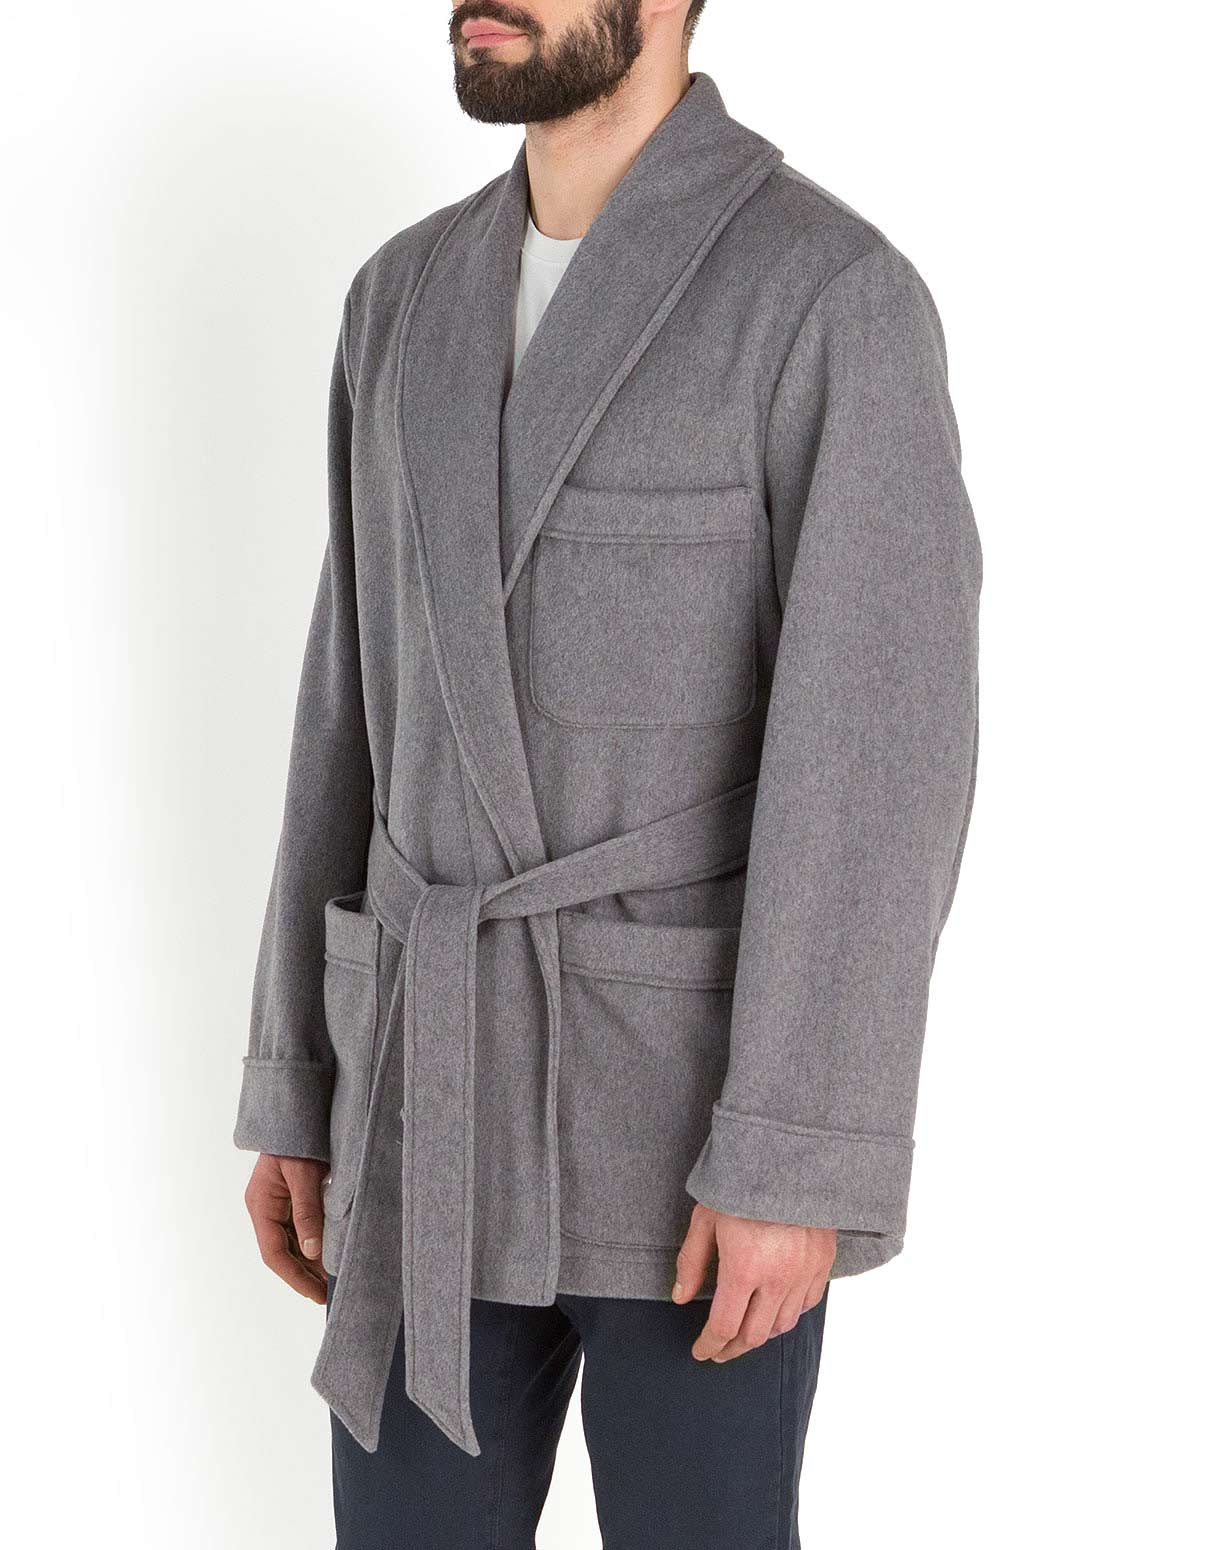 Men's Cashmere Felt Robe Jacket